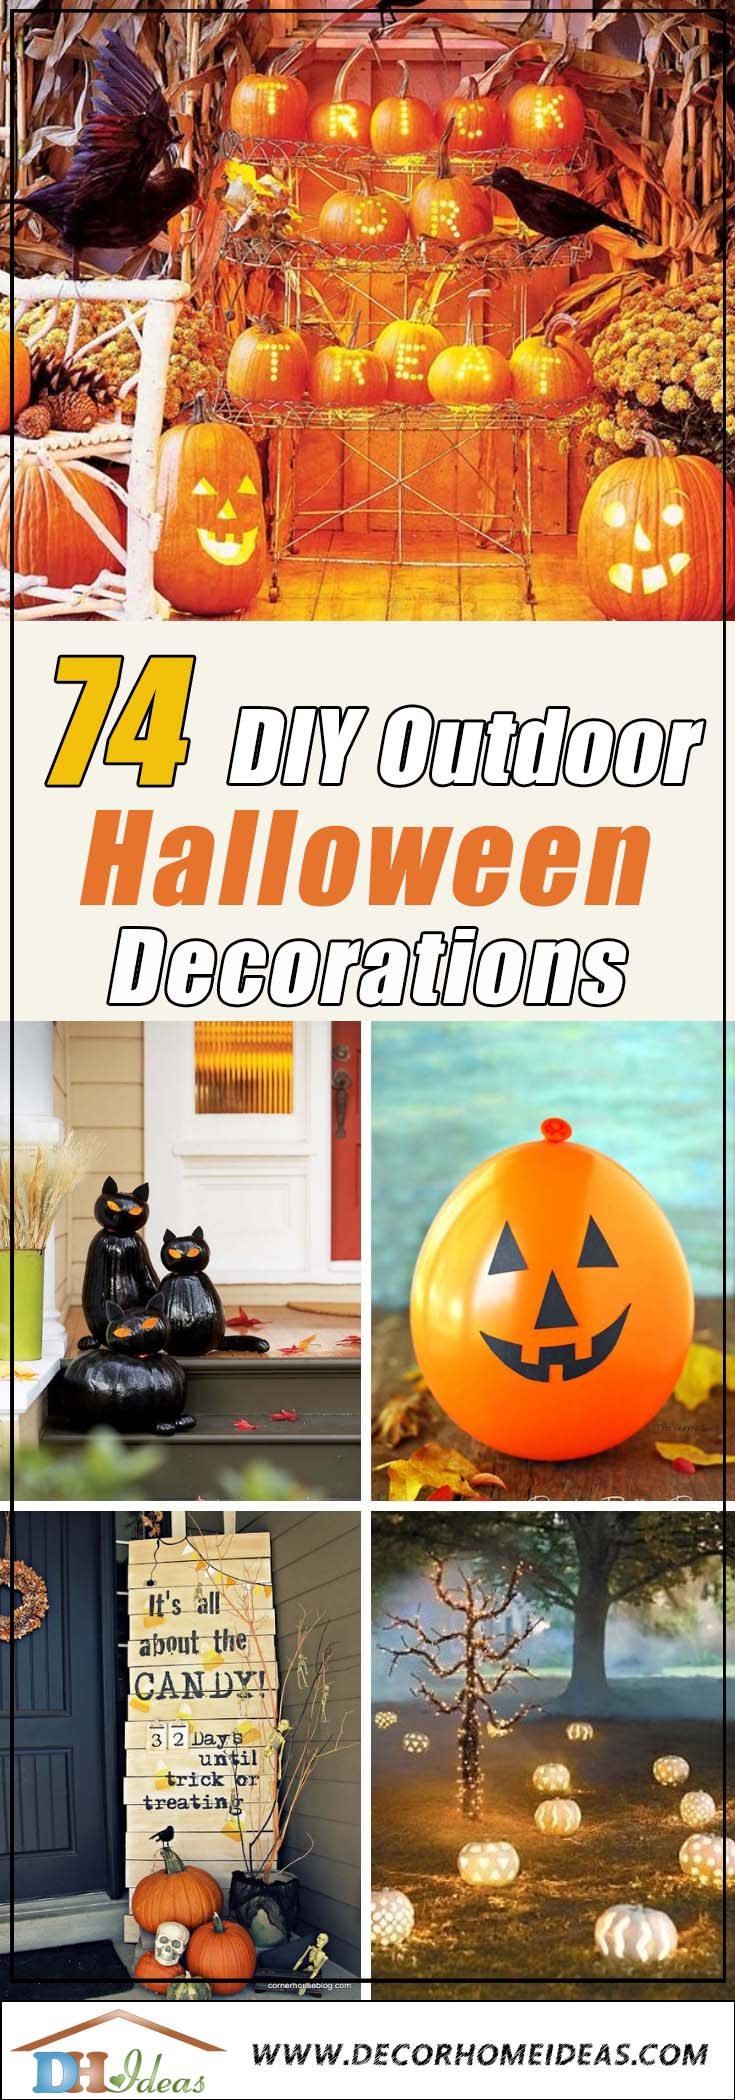 DIY Outdoor Halloween Decorations #halloweendecorations #halloween #diyhalloween #halloweendecor #decorhomeideas